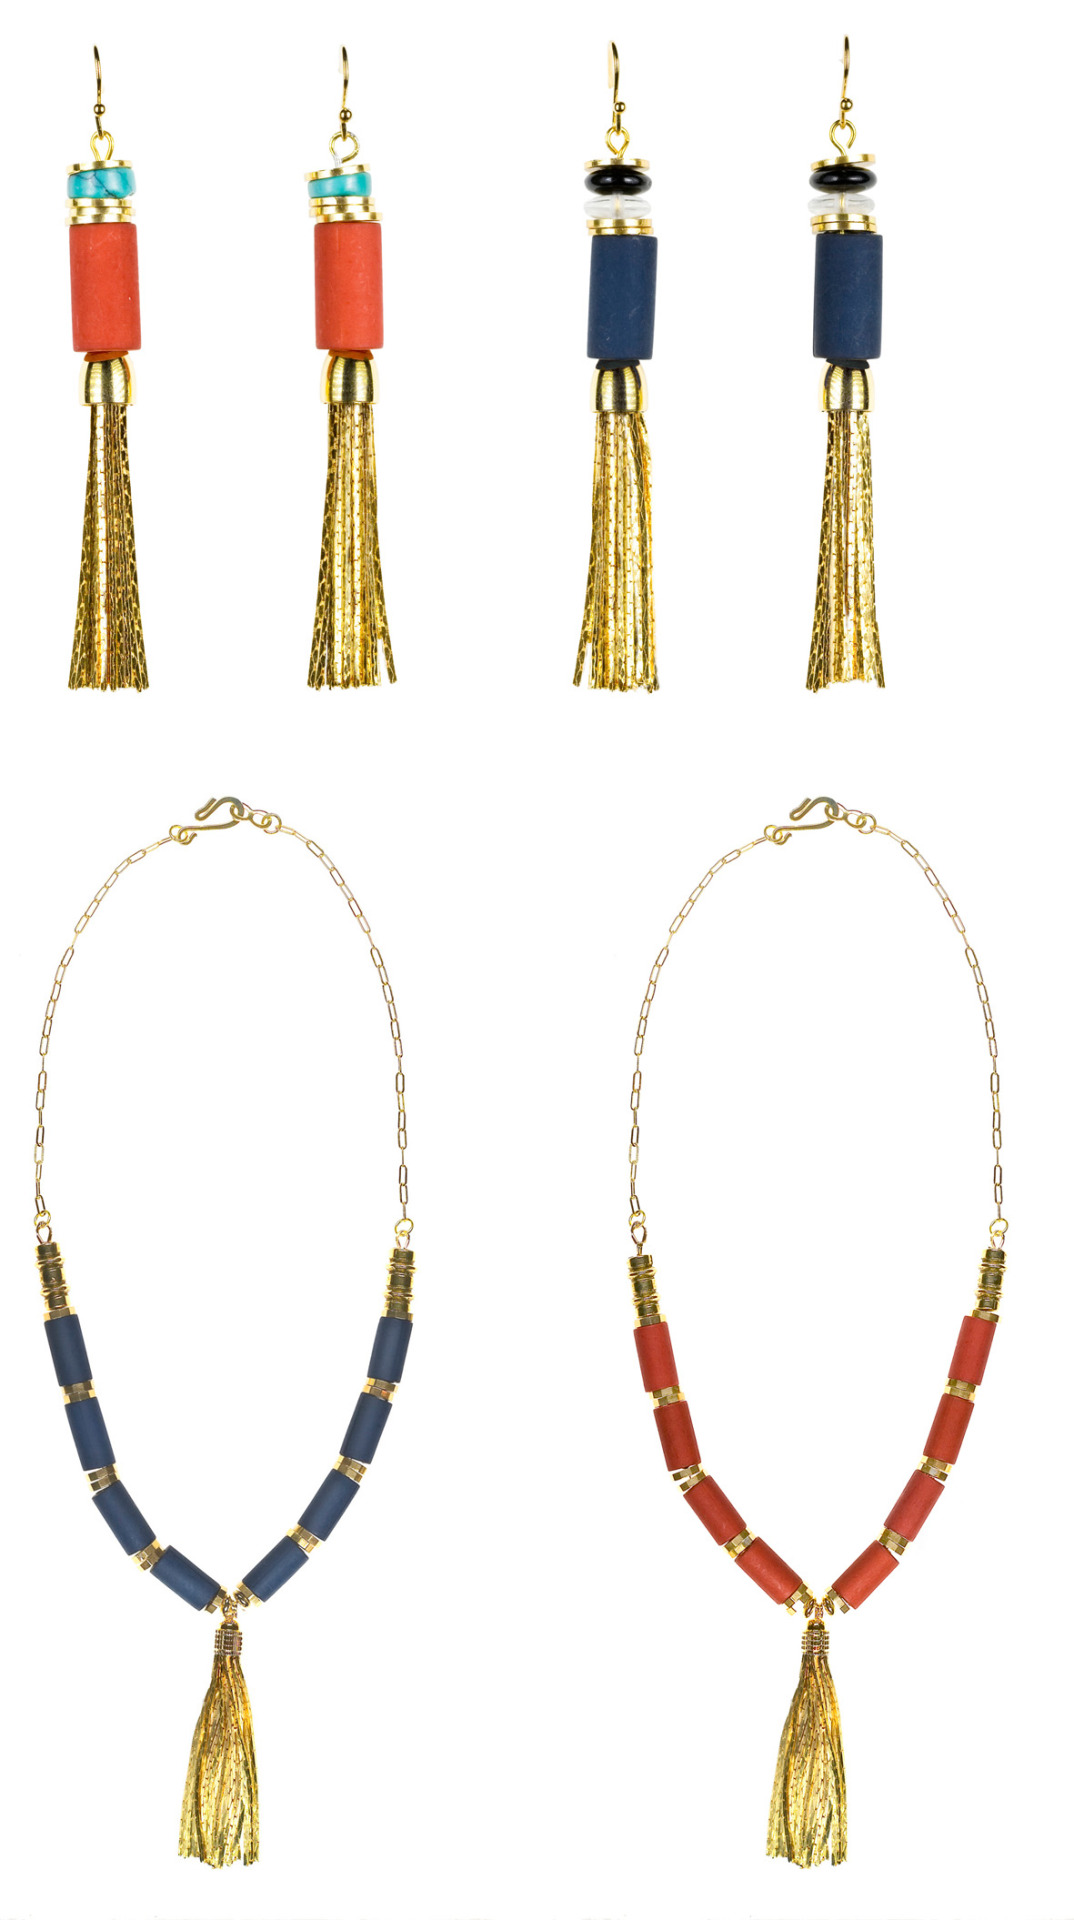 Need some bling? We're obsessed with Tibetan-inspired necklaces + earrings from Jenny Bird. They make the perfect present for yourself or a sparkle-loving pal. Take them home, here.